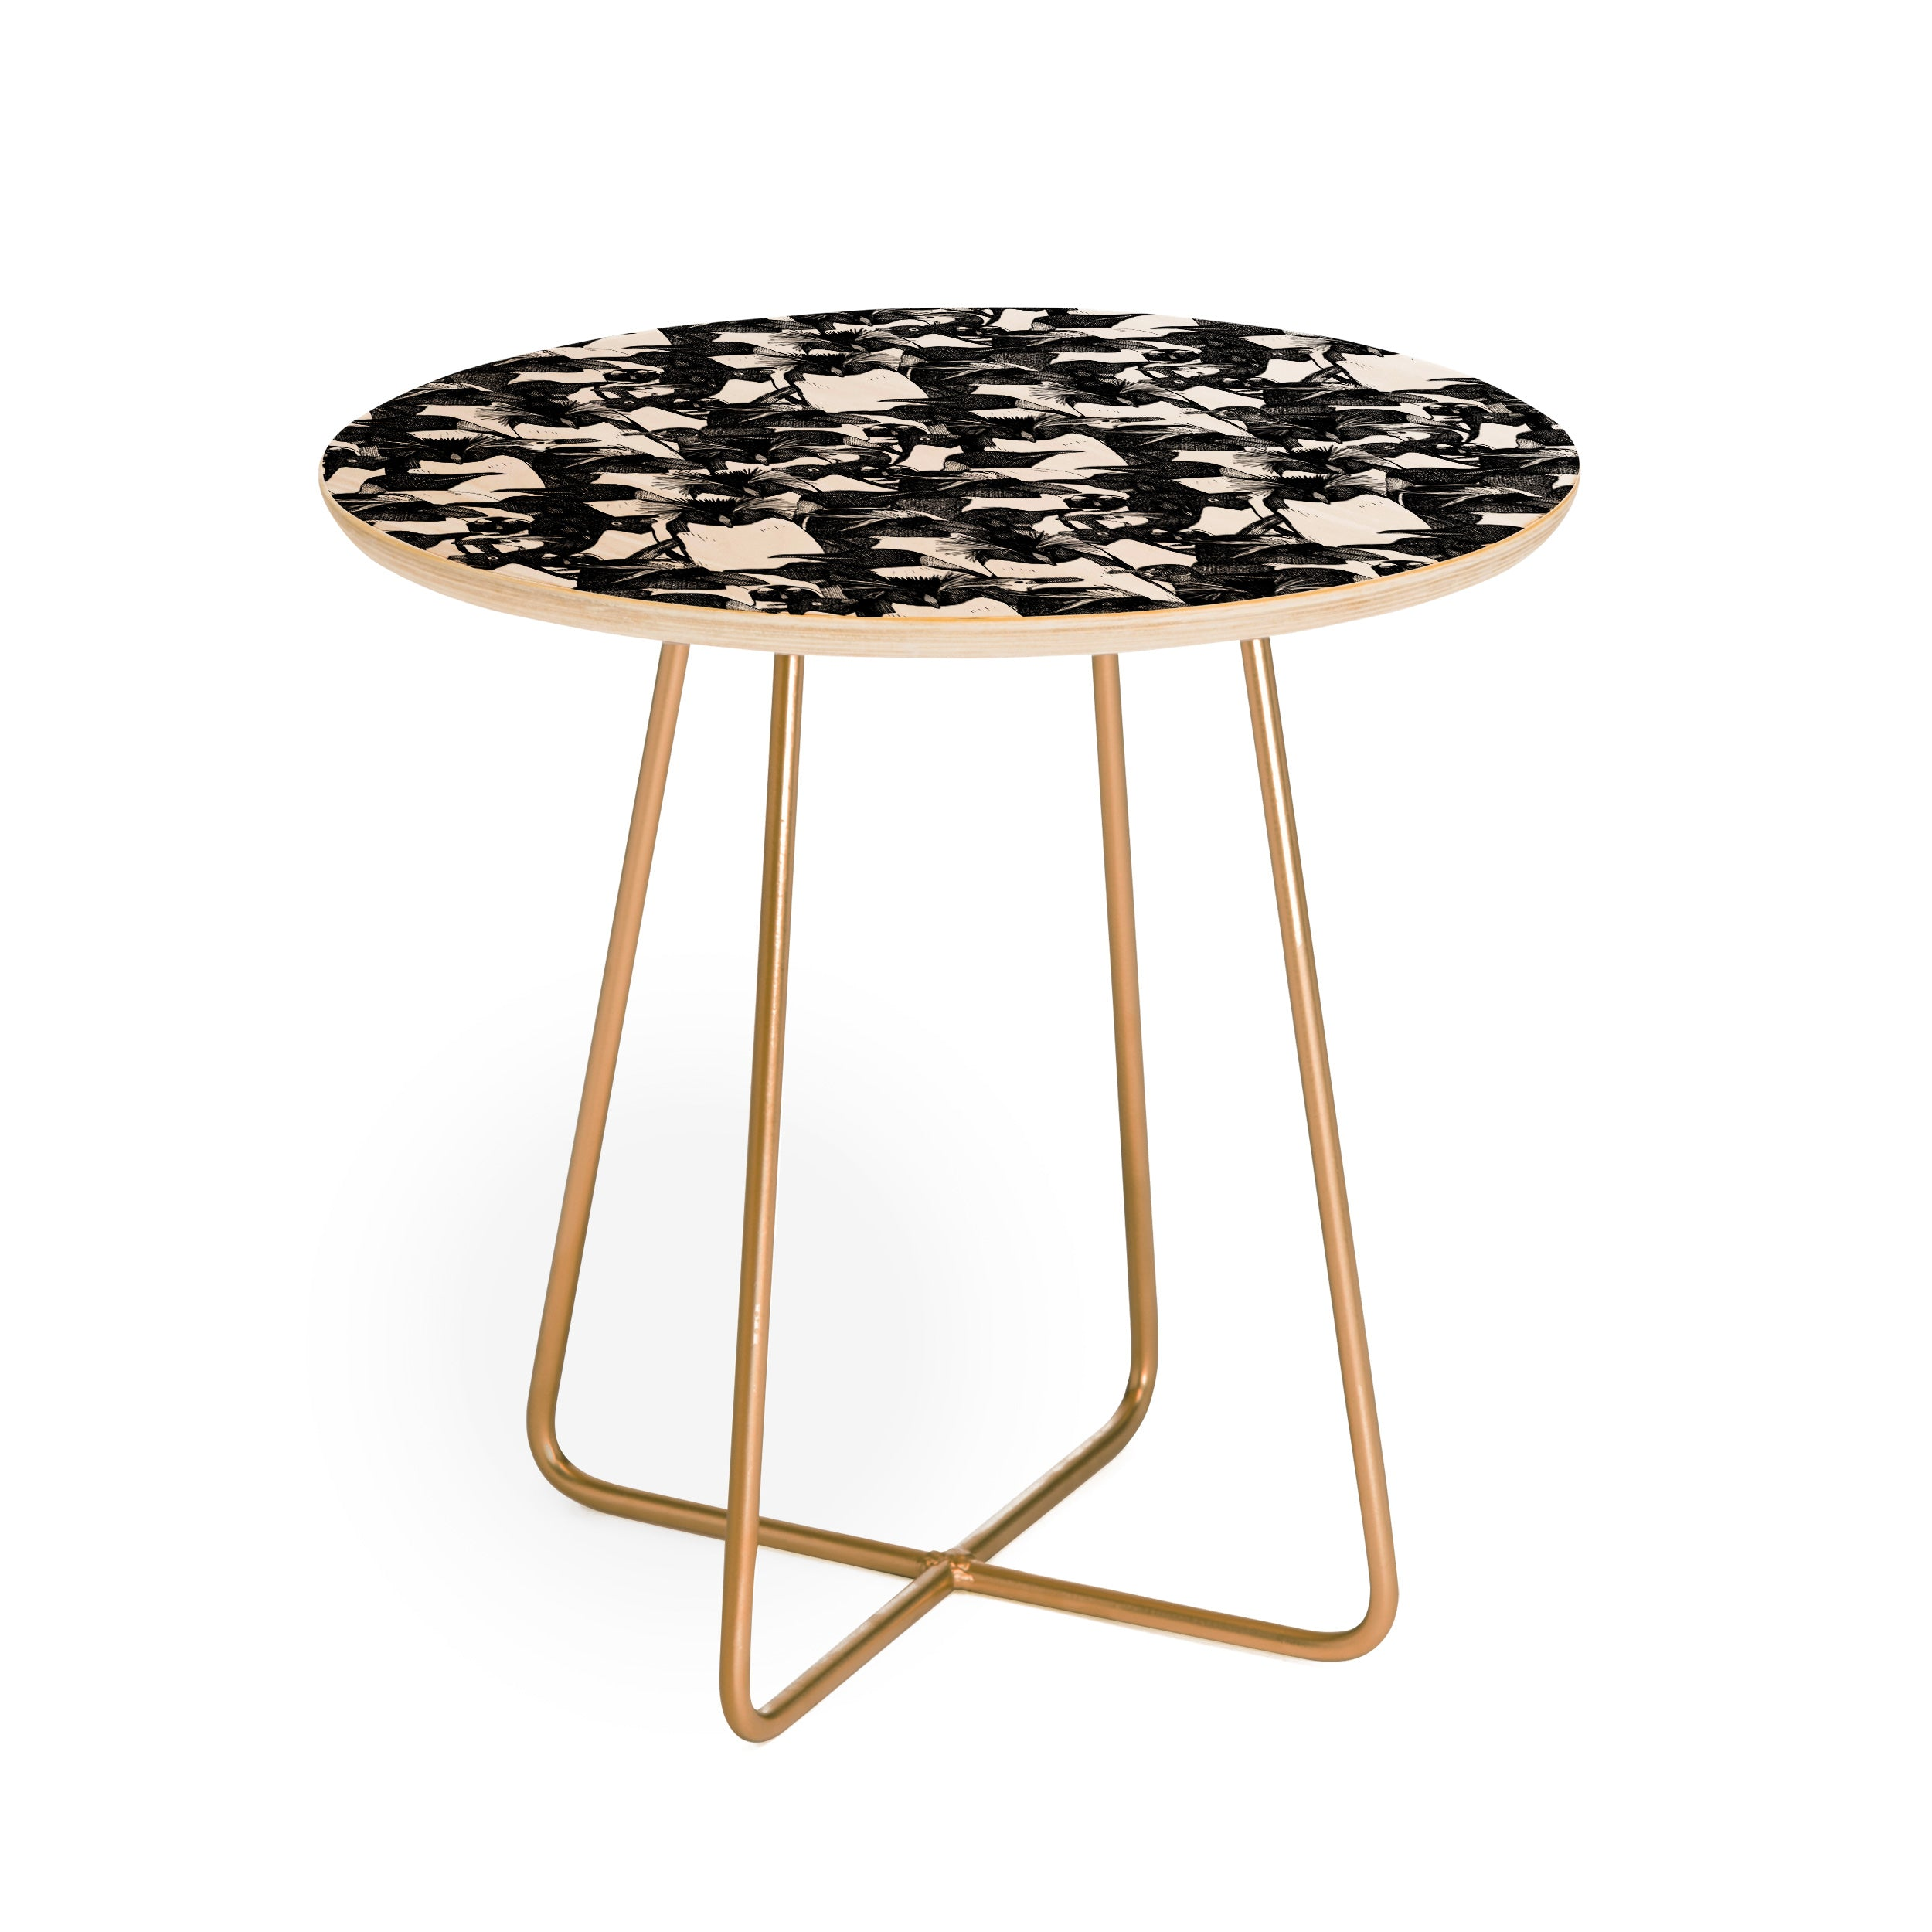 Sharon Turner just penguins Round Side Table